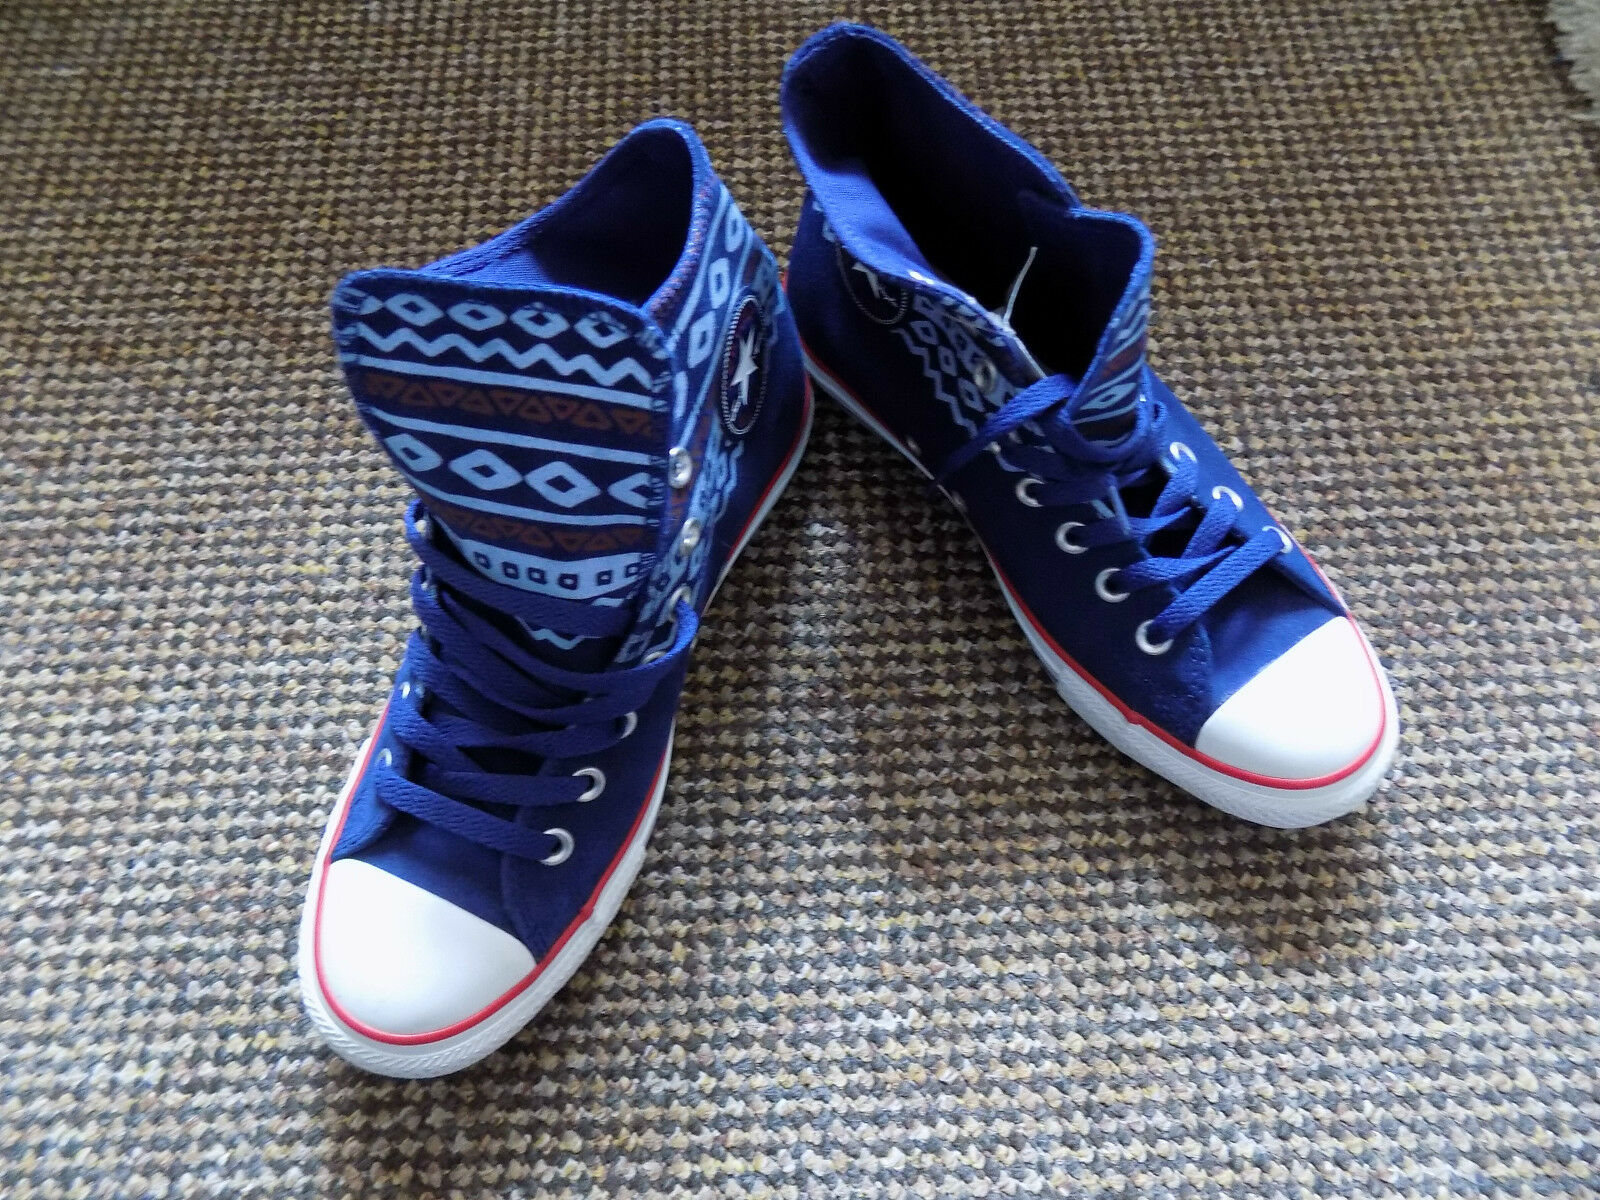 Converse All Star size 7.5 hi top bluee suede lace lace lace up brand new 453978